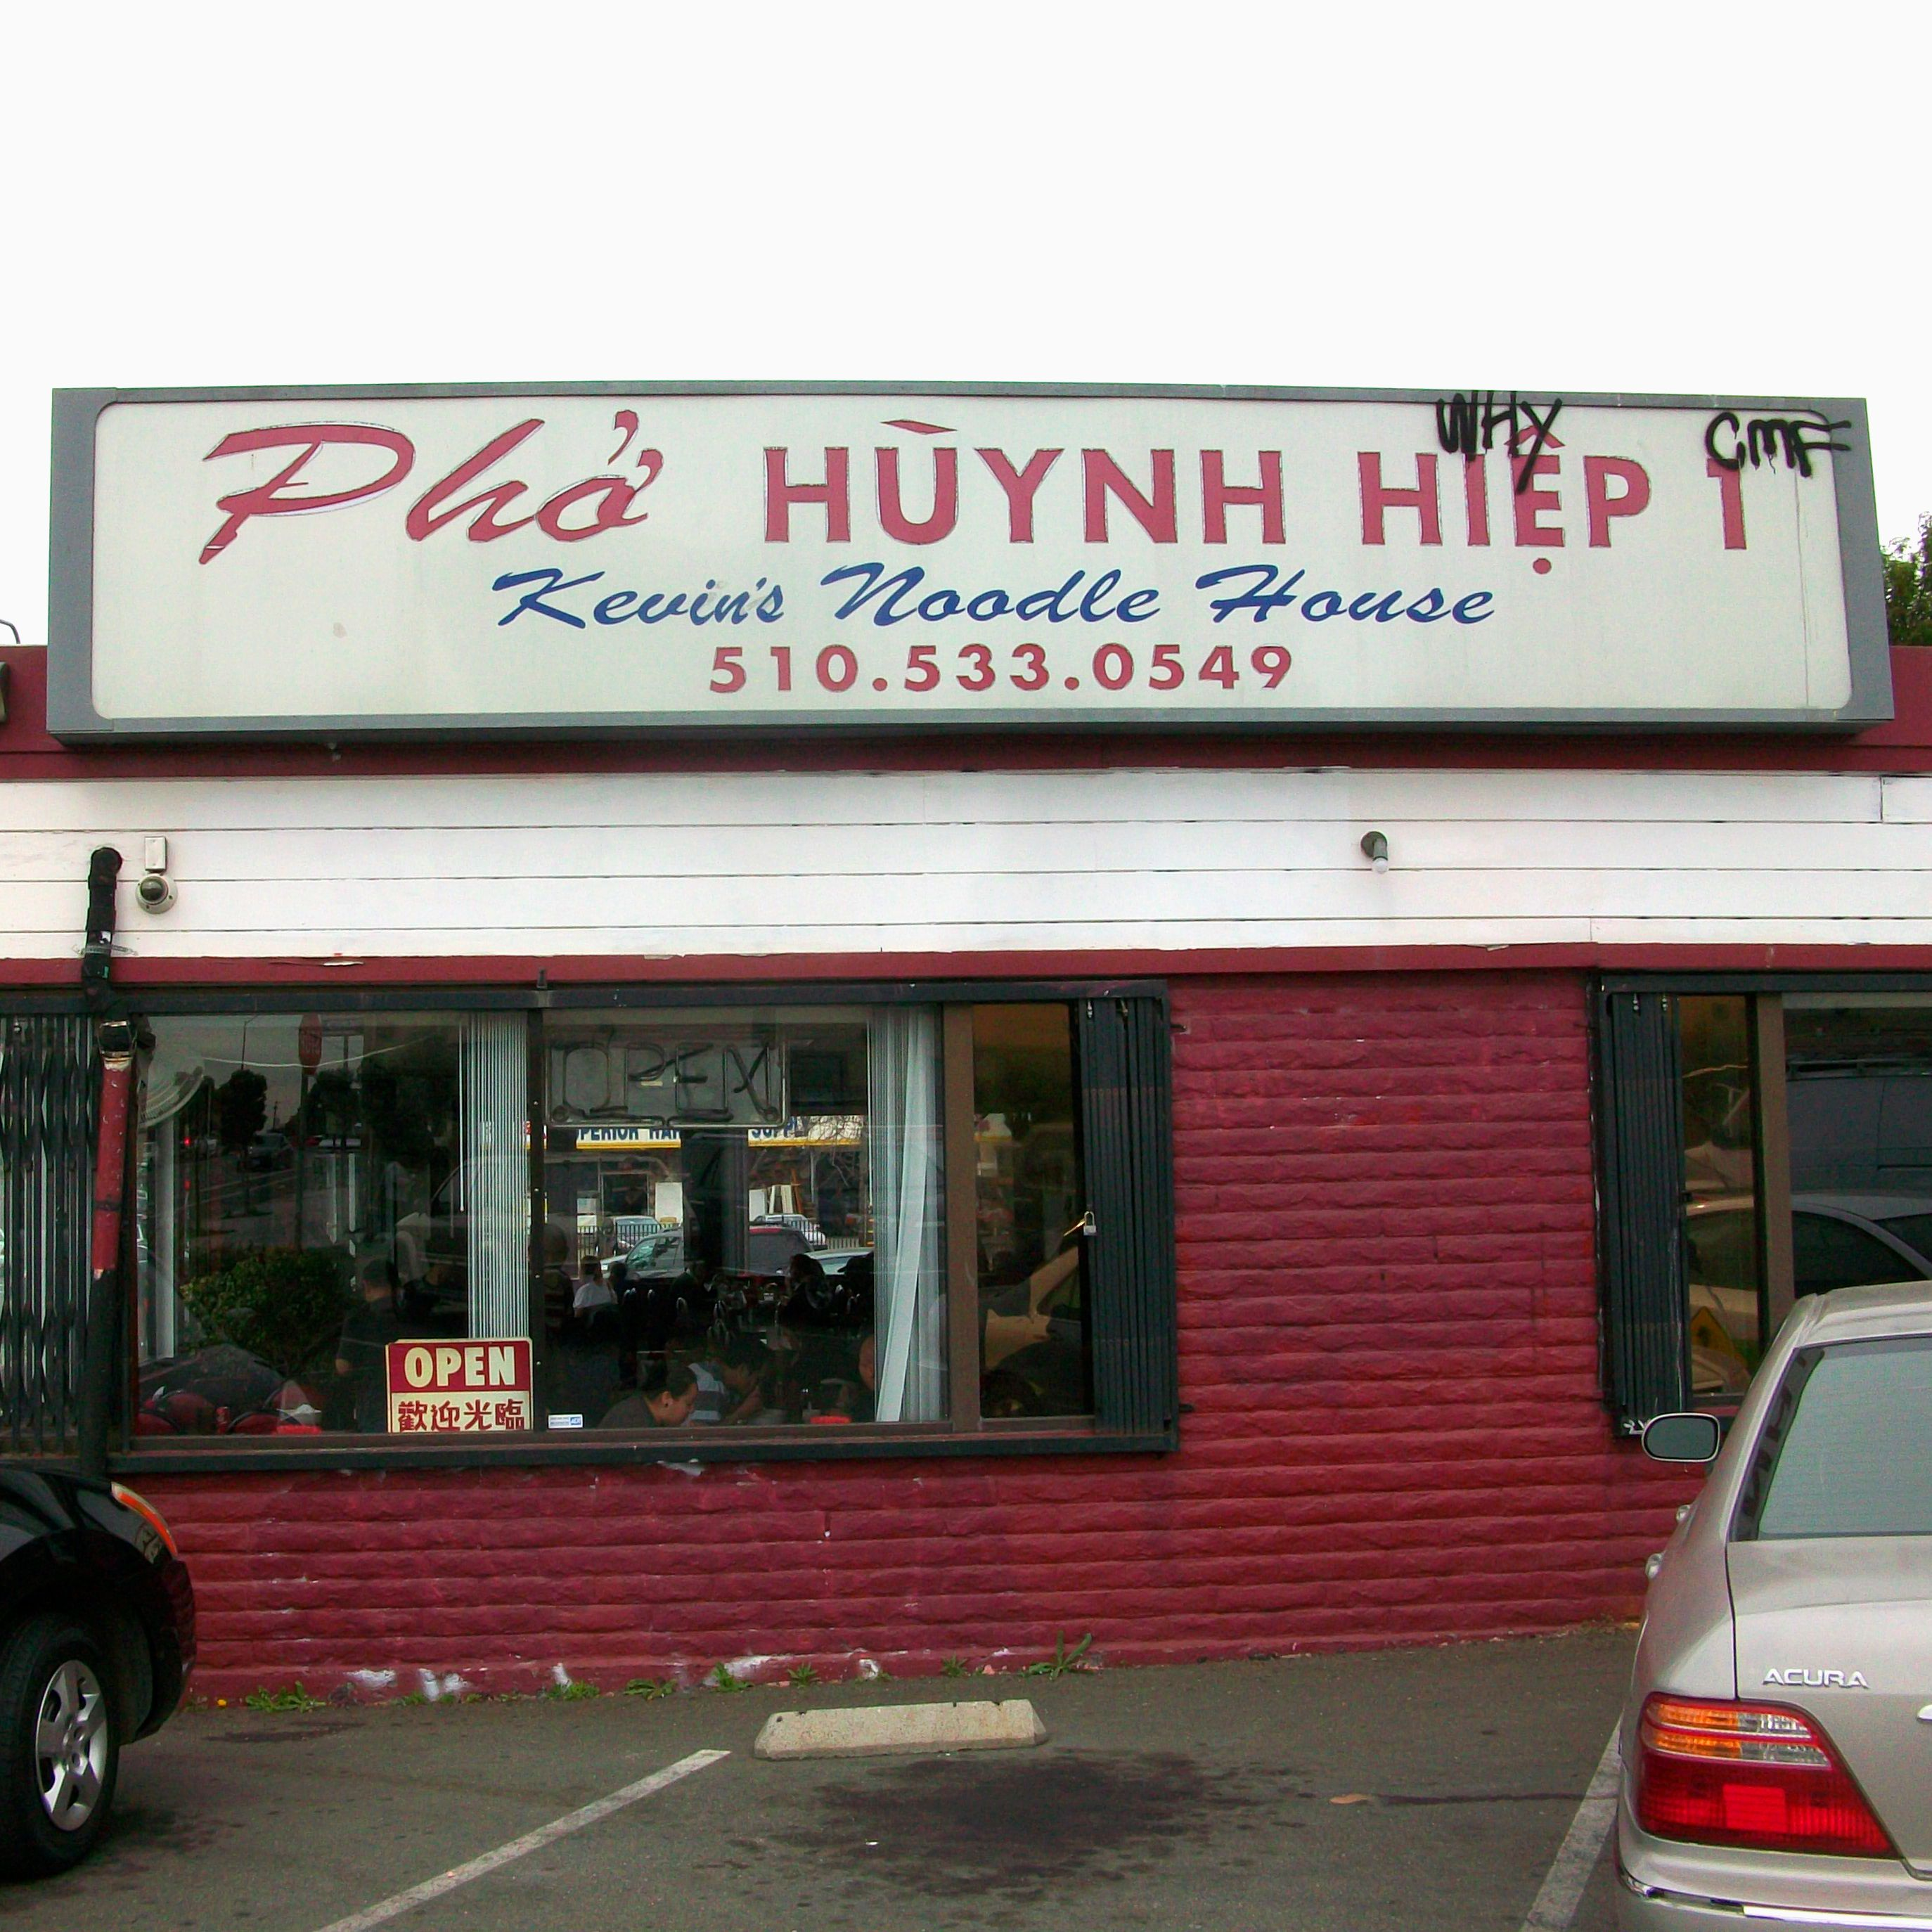 Phở Huỹnh Hiệp 1 Kevin S Noodle House The Neighbourhood Pho Restaurant Noodle House